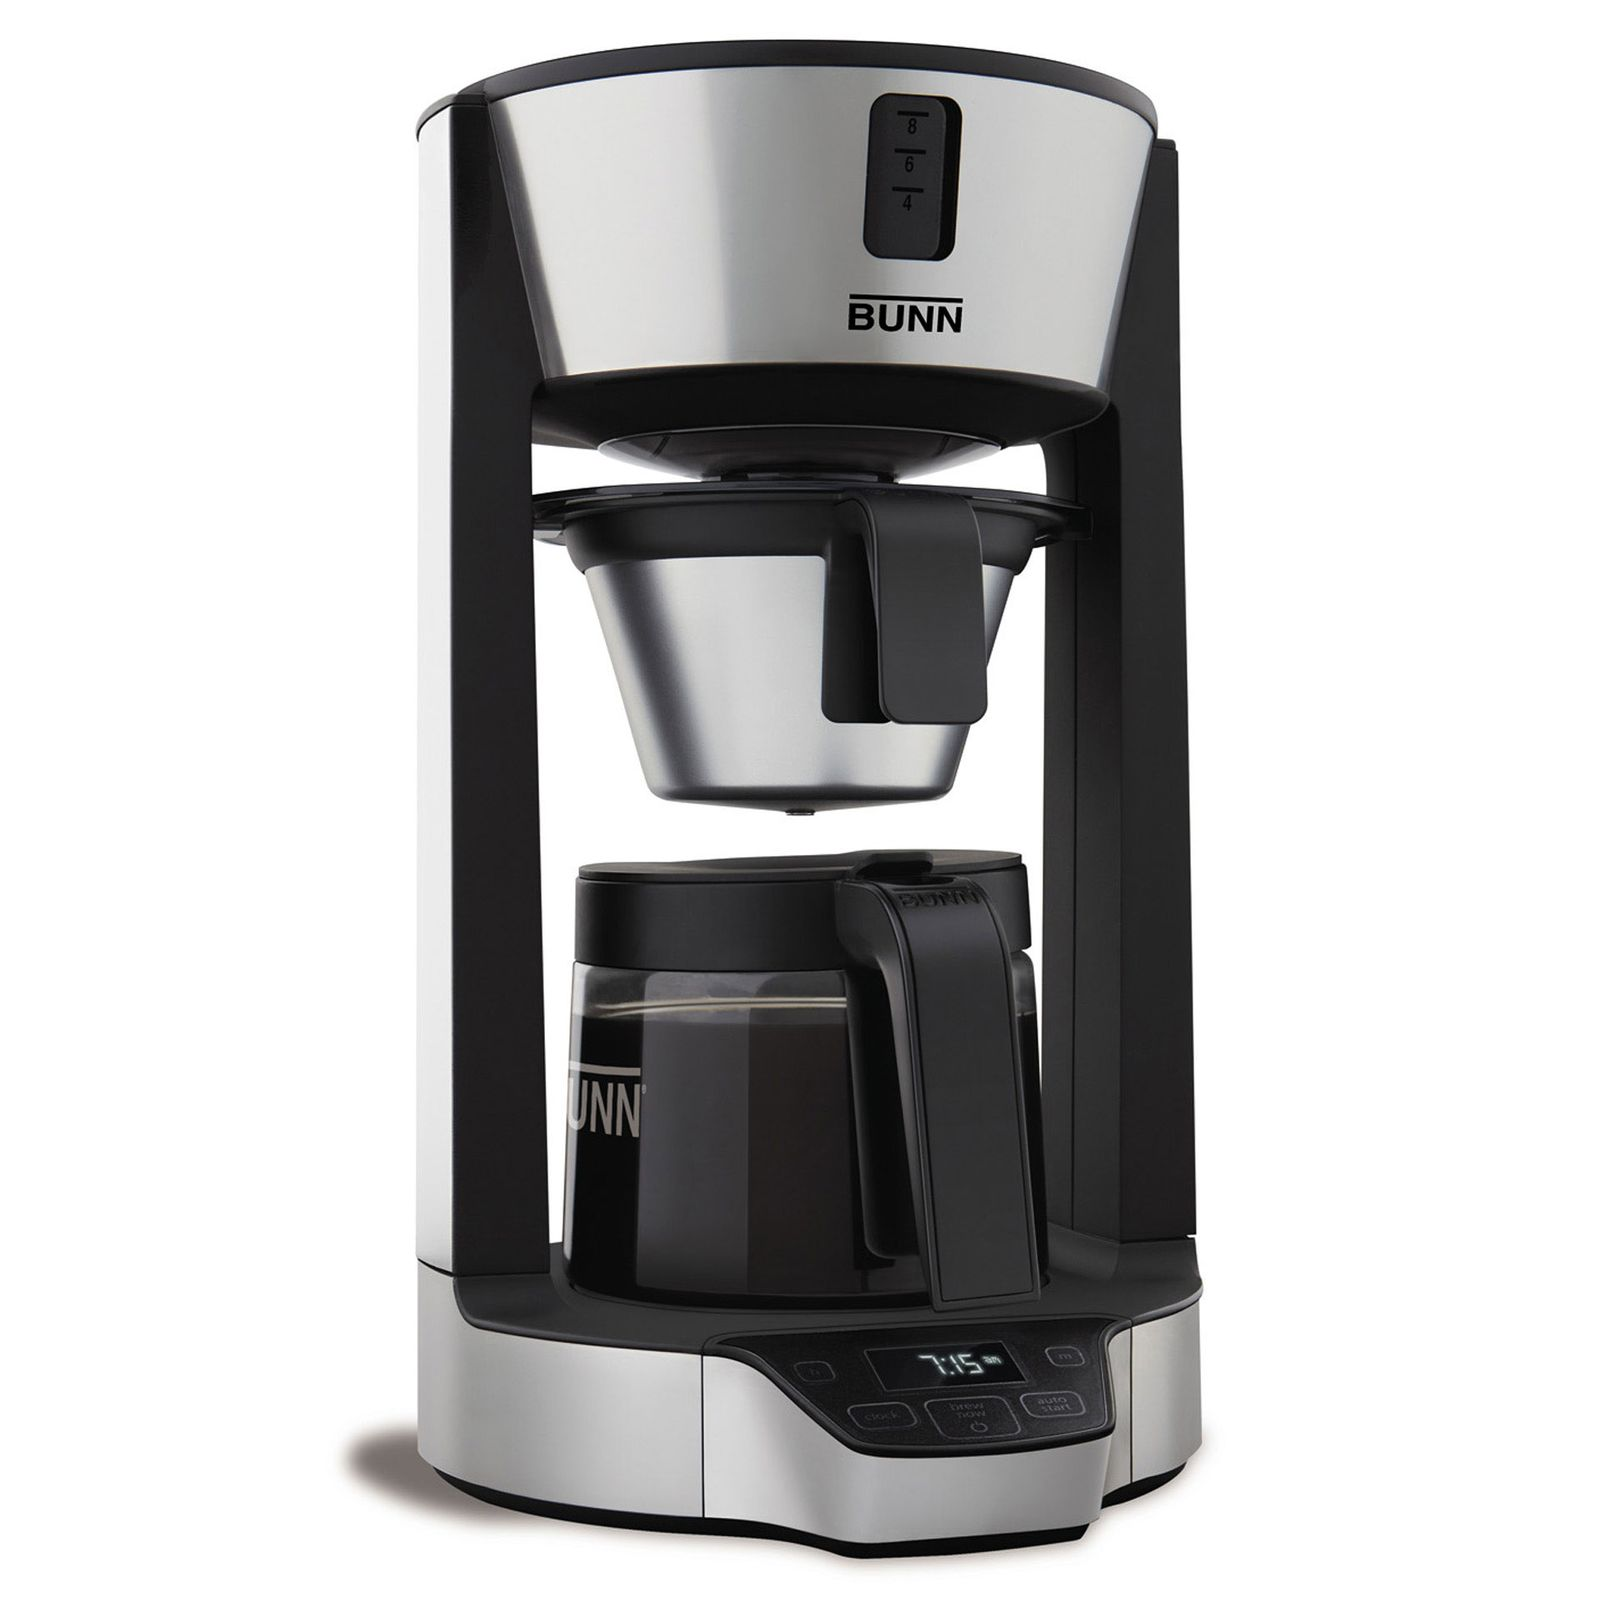 550052b52cea4 ghk bunn phase brew hg 8 cup coffee brewer